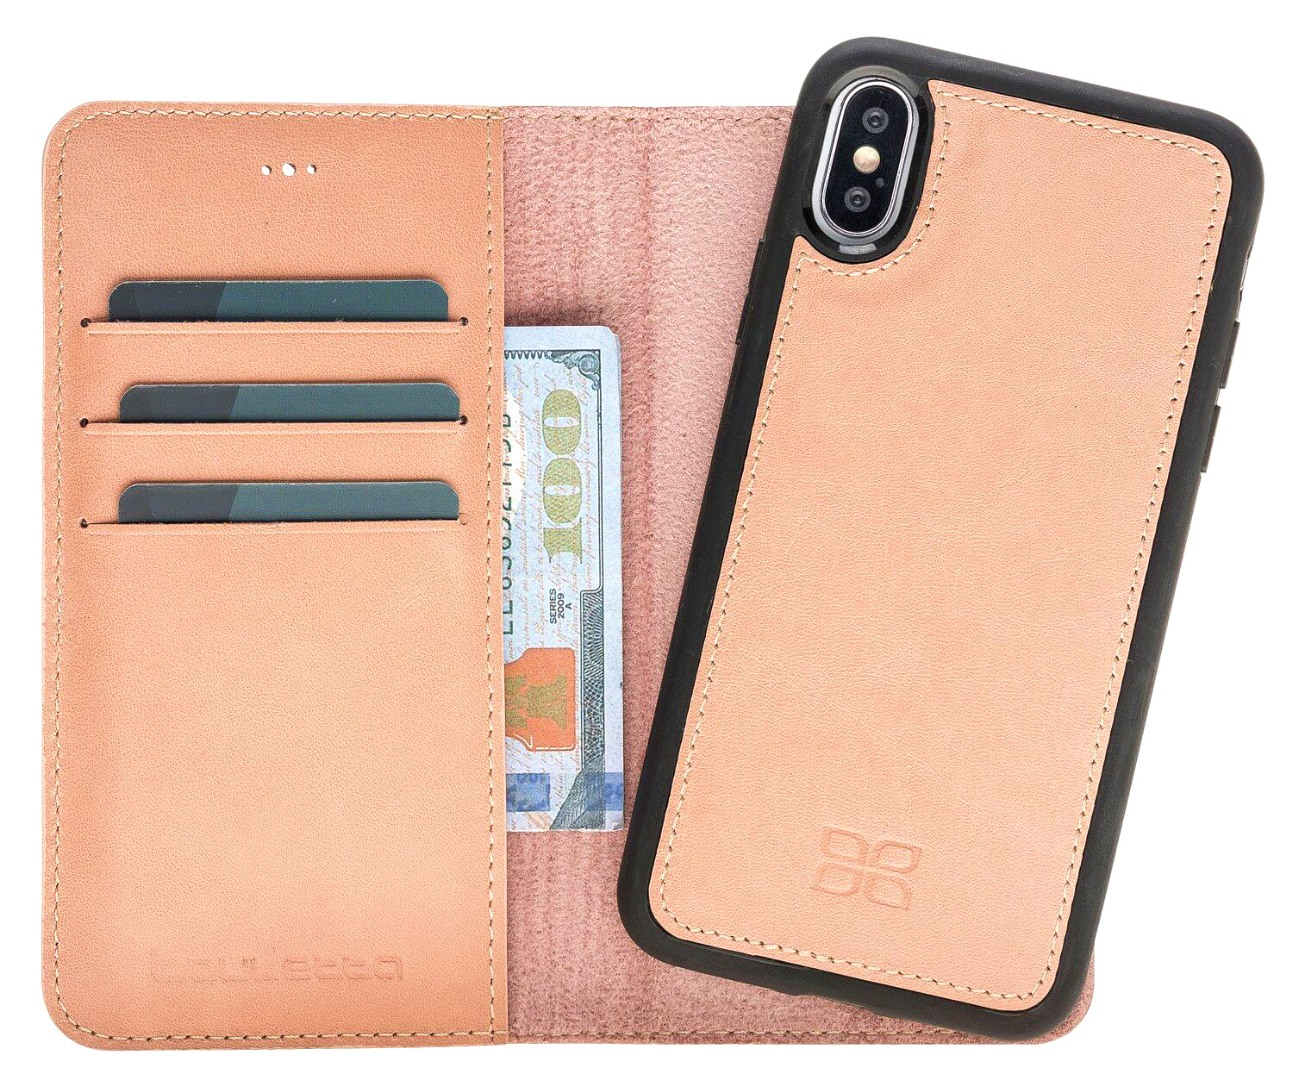 Husa piele naturala 2 in 1, tip portofel + back cover, iPhone X / XS - Bouletta Magic Wallet, Nude pink